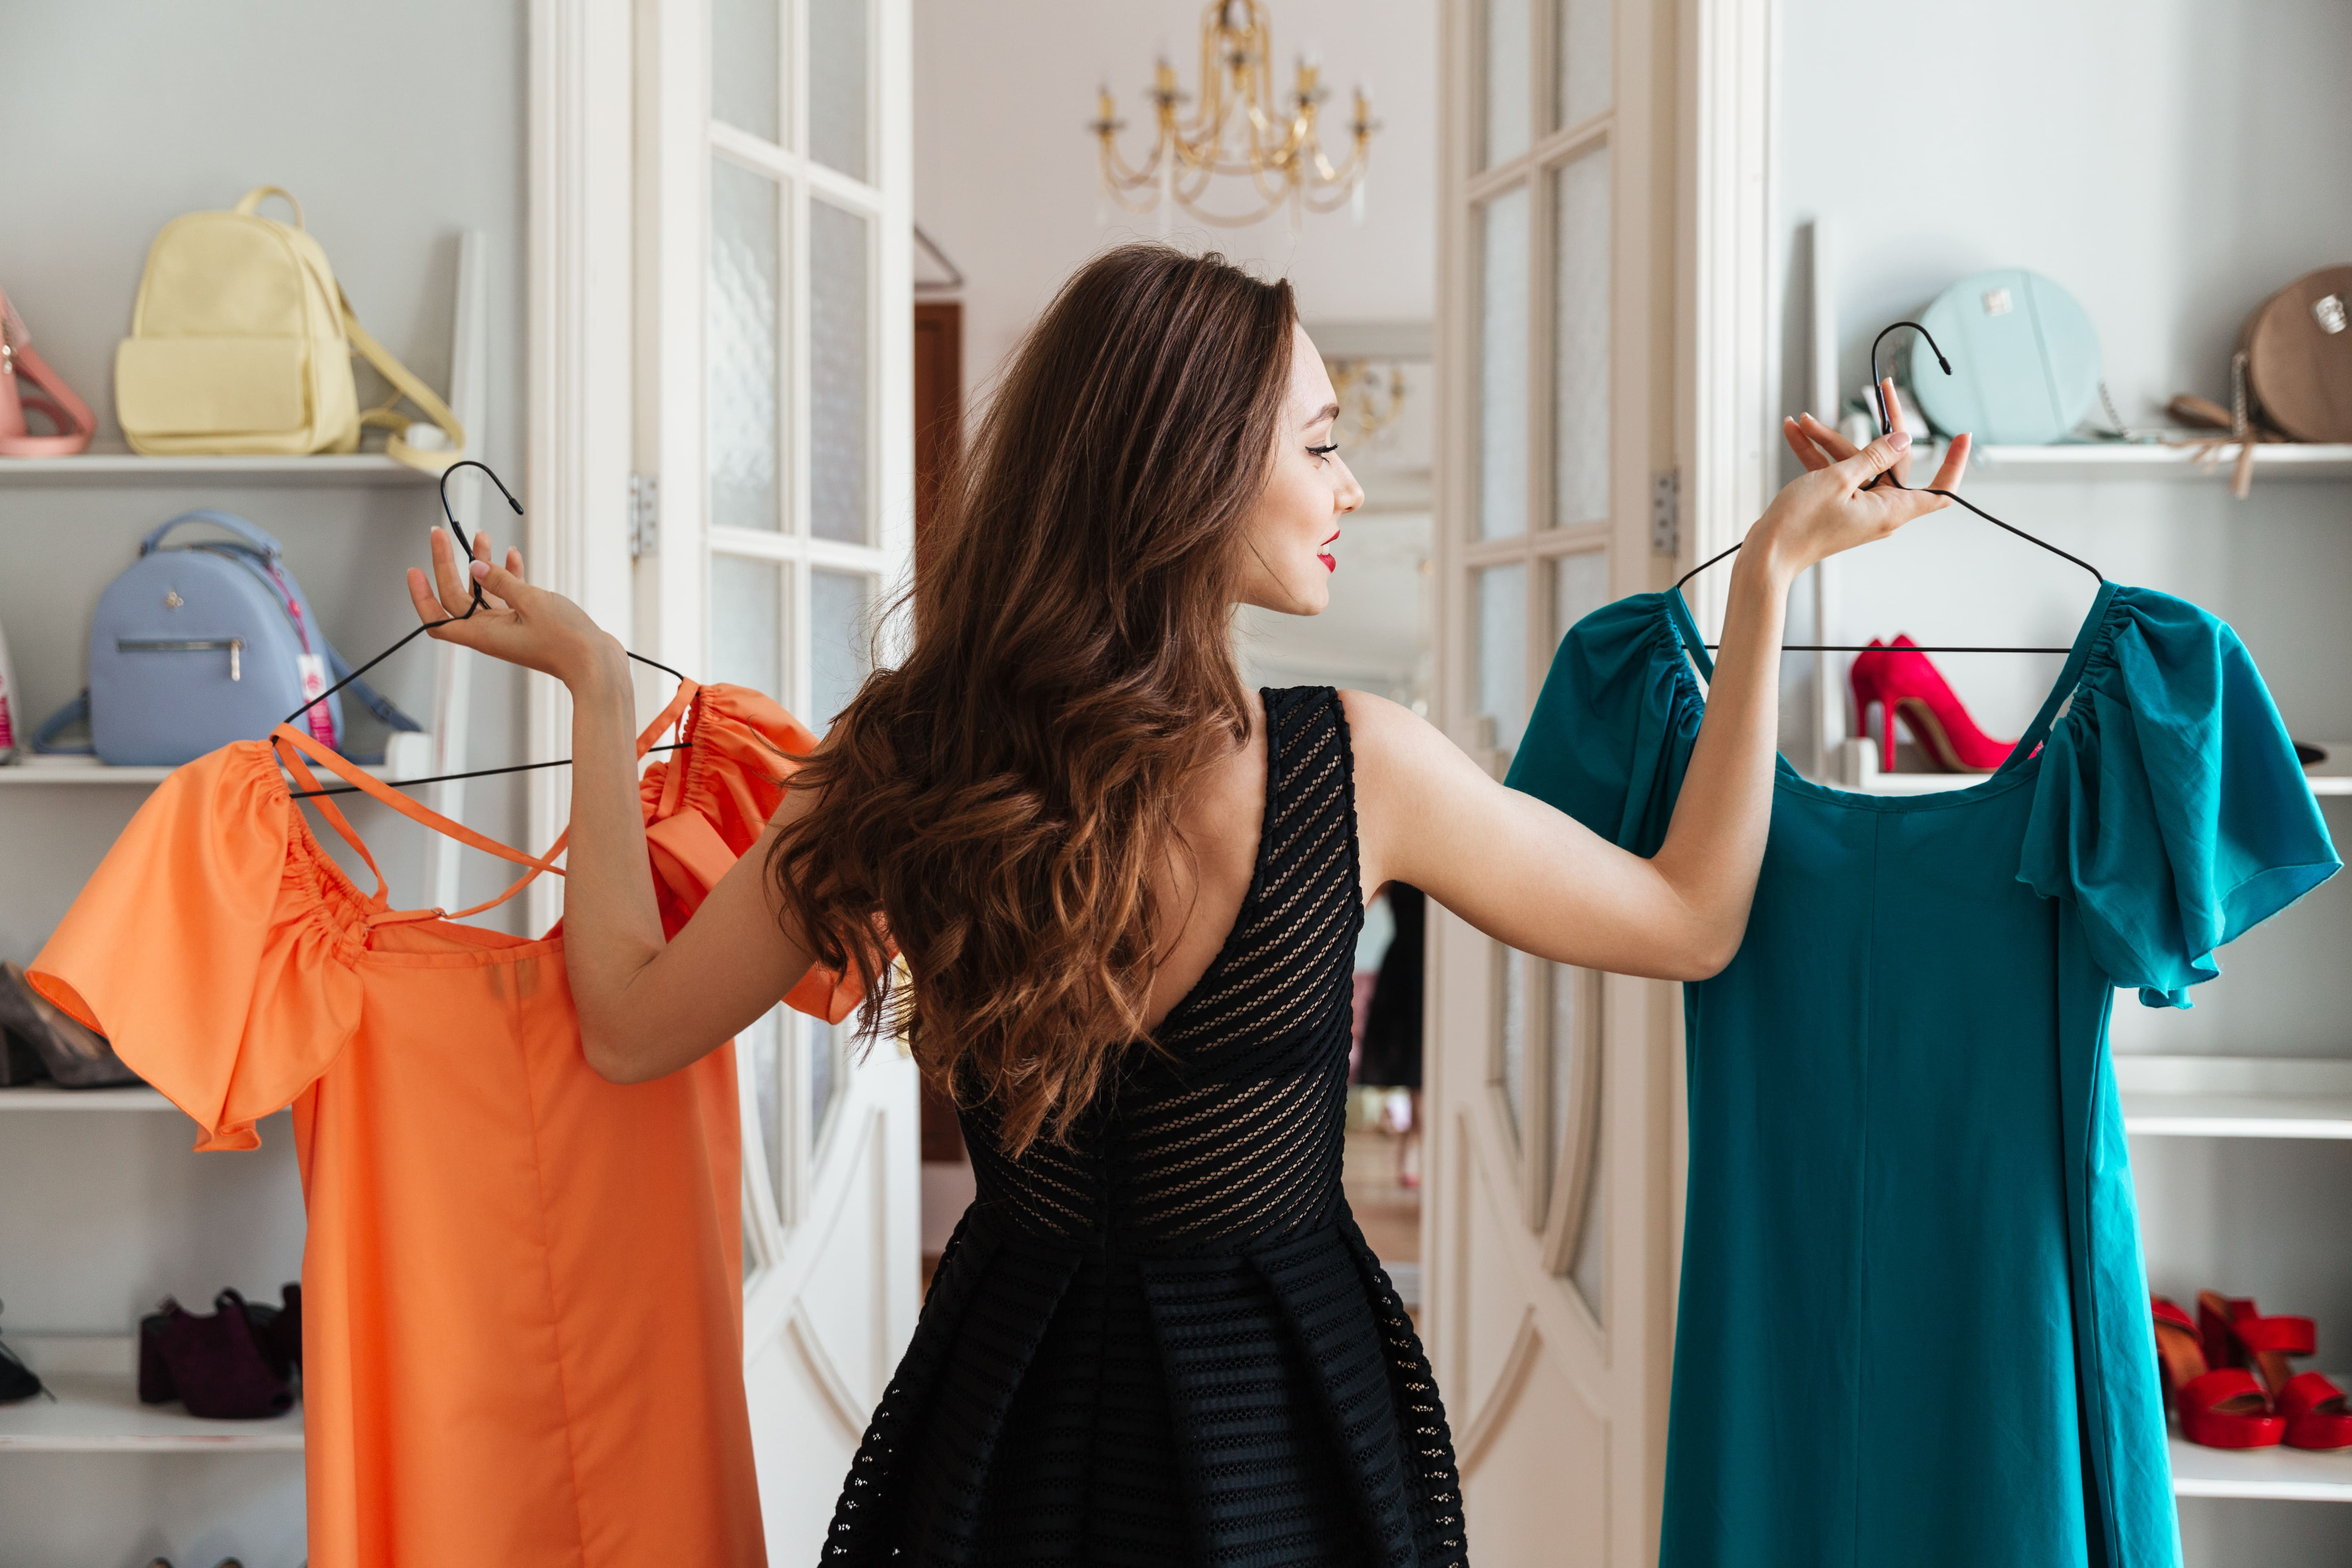 a woman looking at clothes